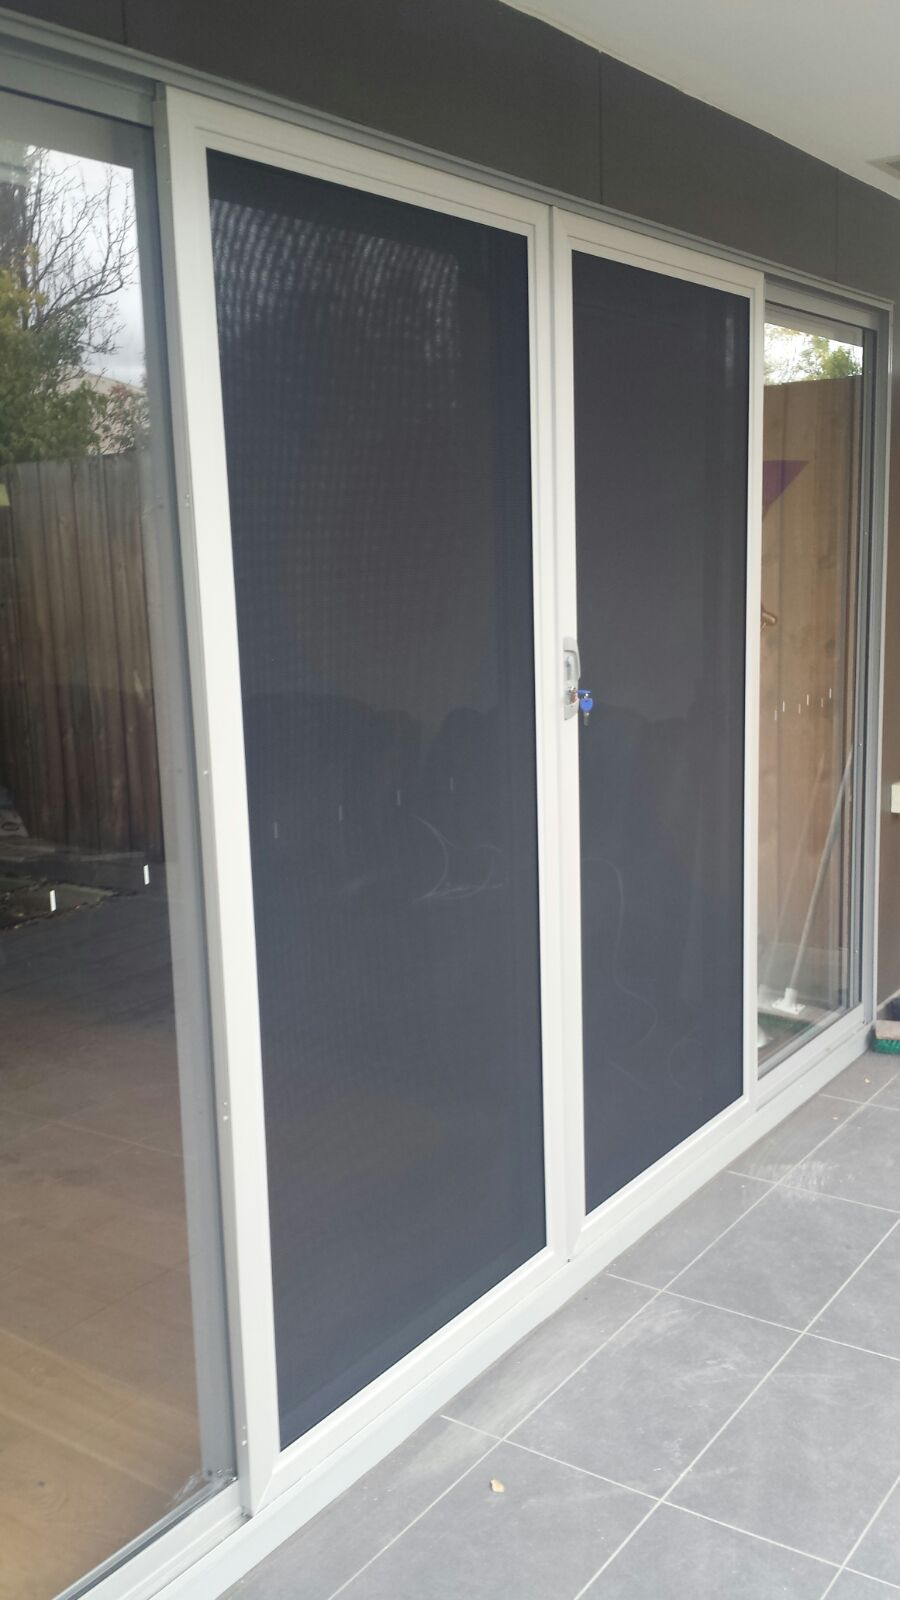 Aluminium frame security sliding doors with stainless ...